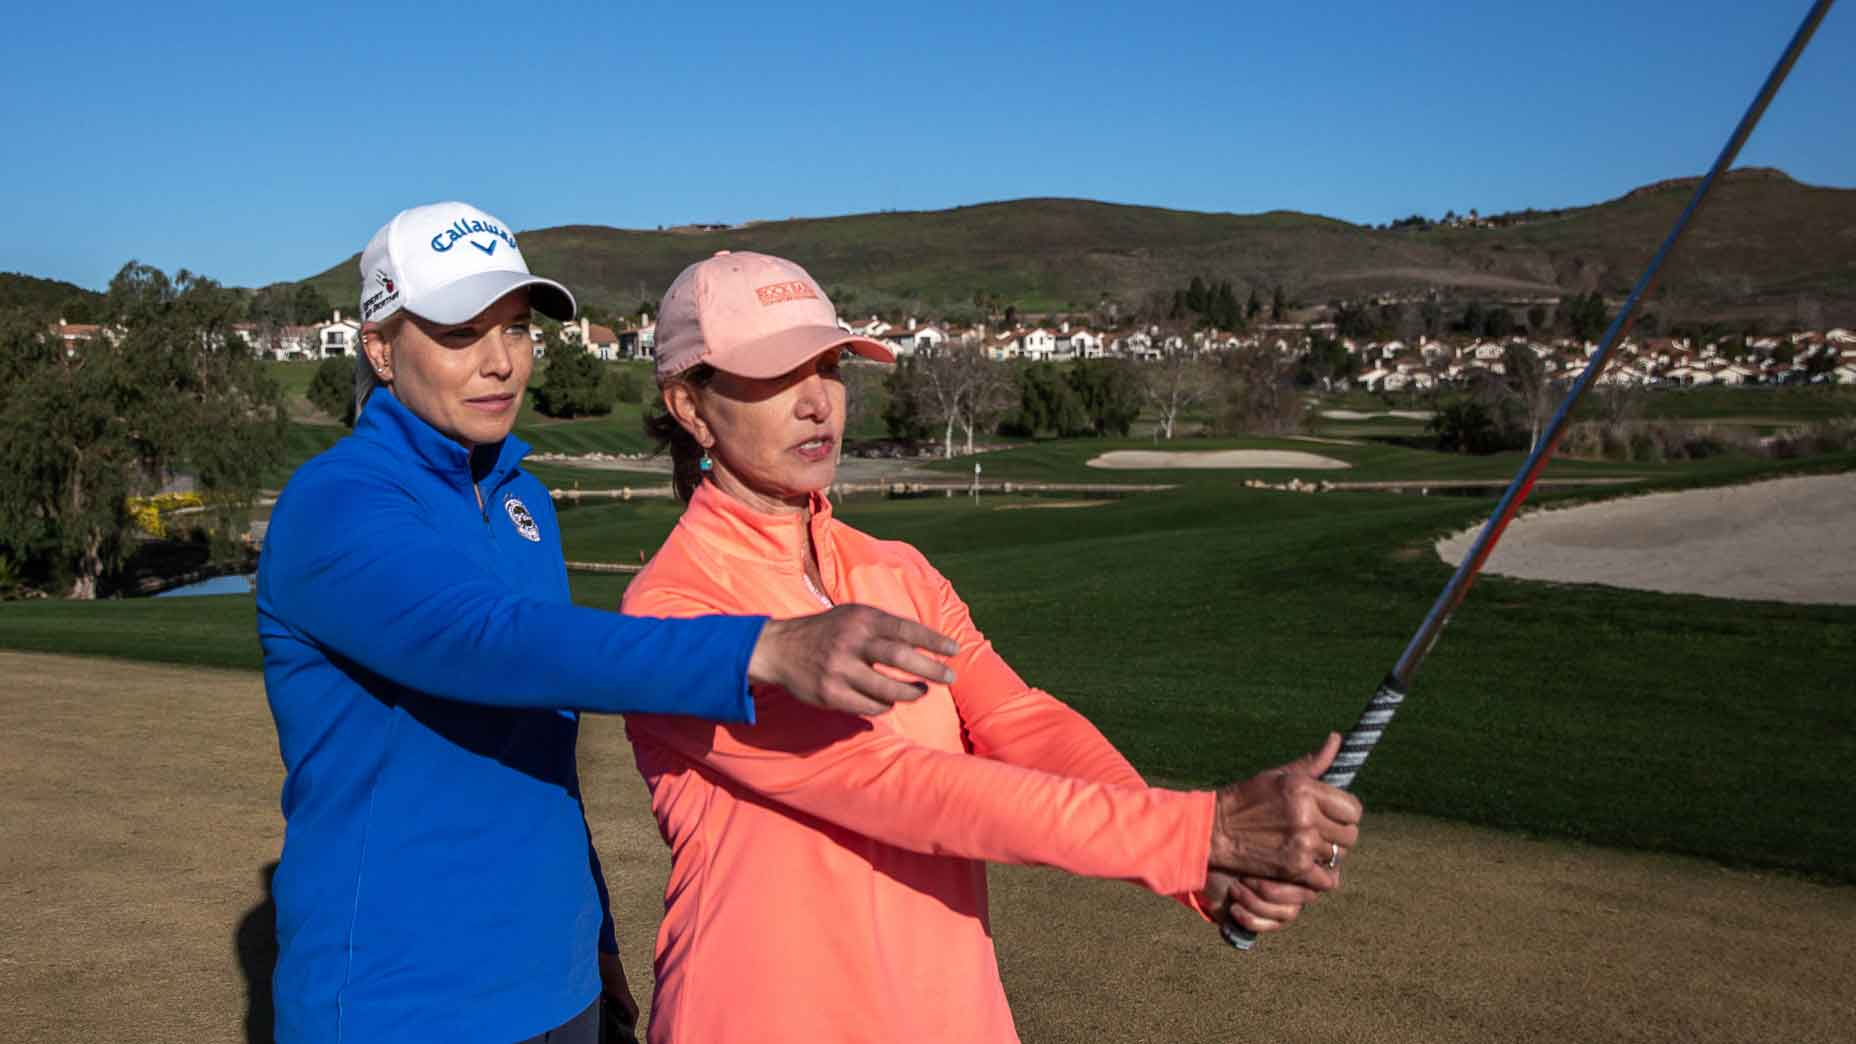 Women's golf tips: Do this 1 thing to rid your body of tension before hitting a shot